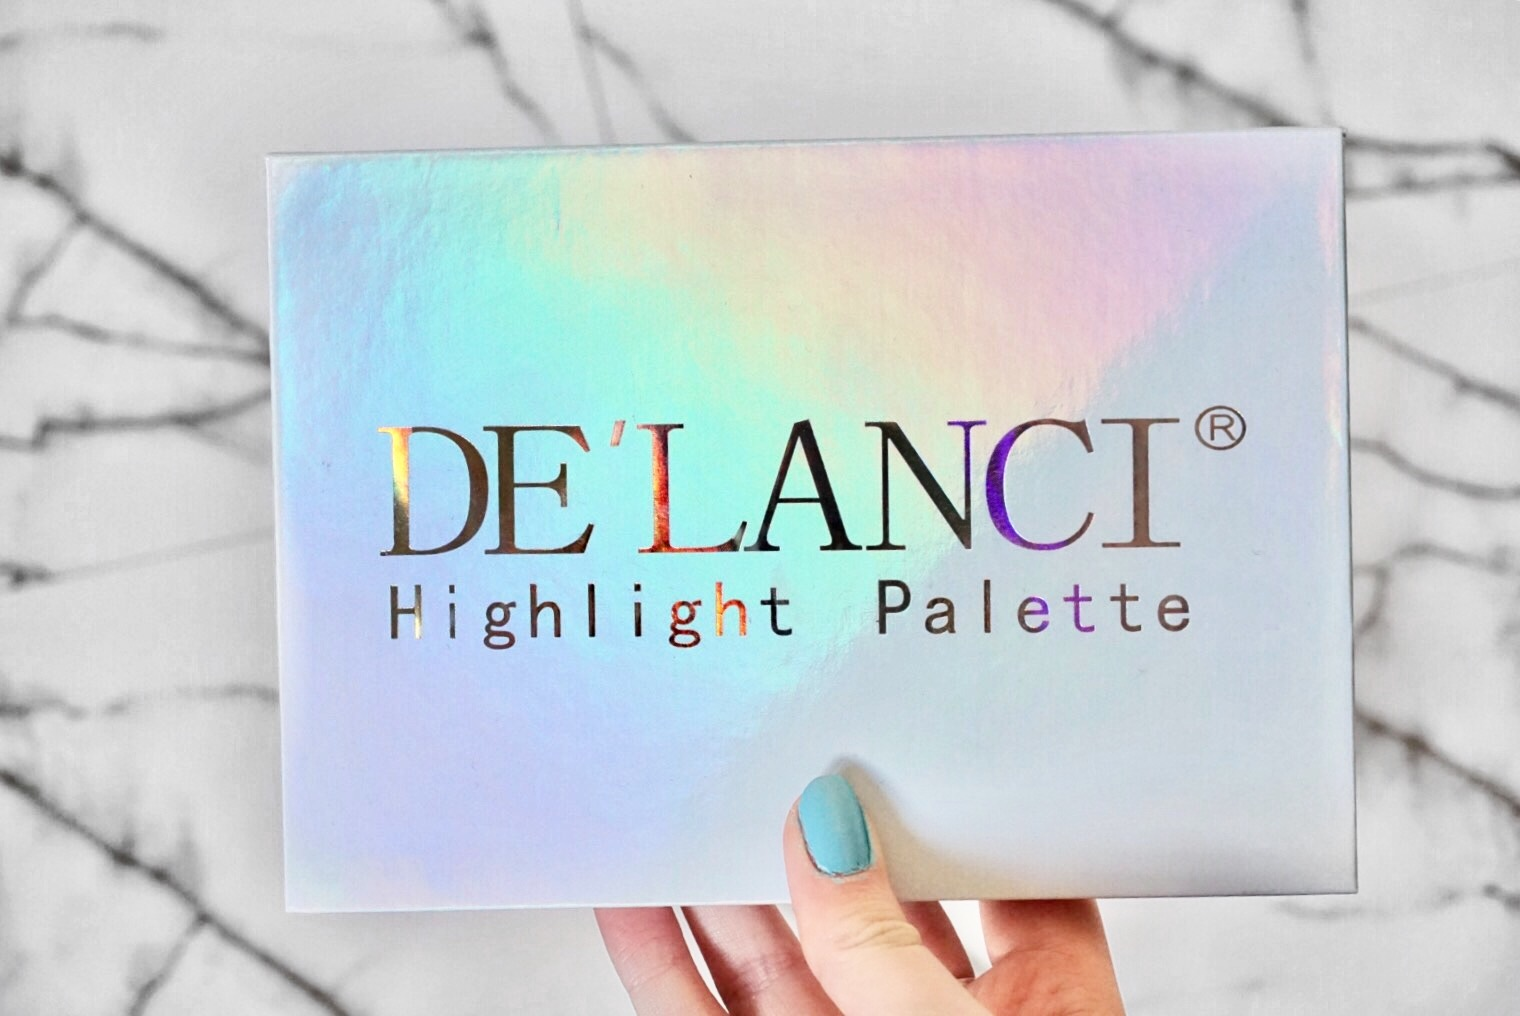 DE'LANCI Highlight Palette Packaging